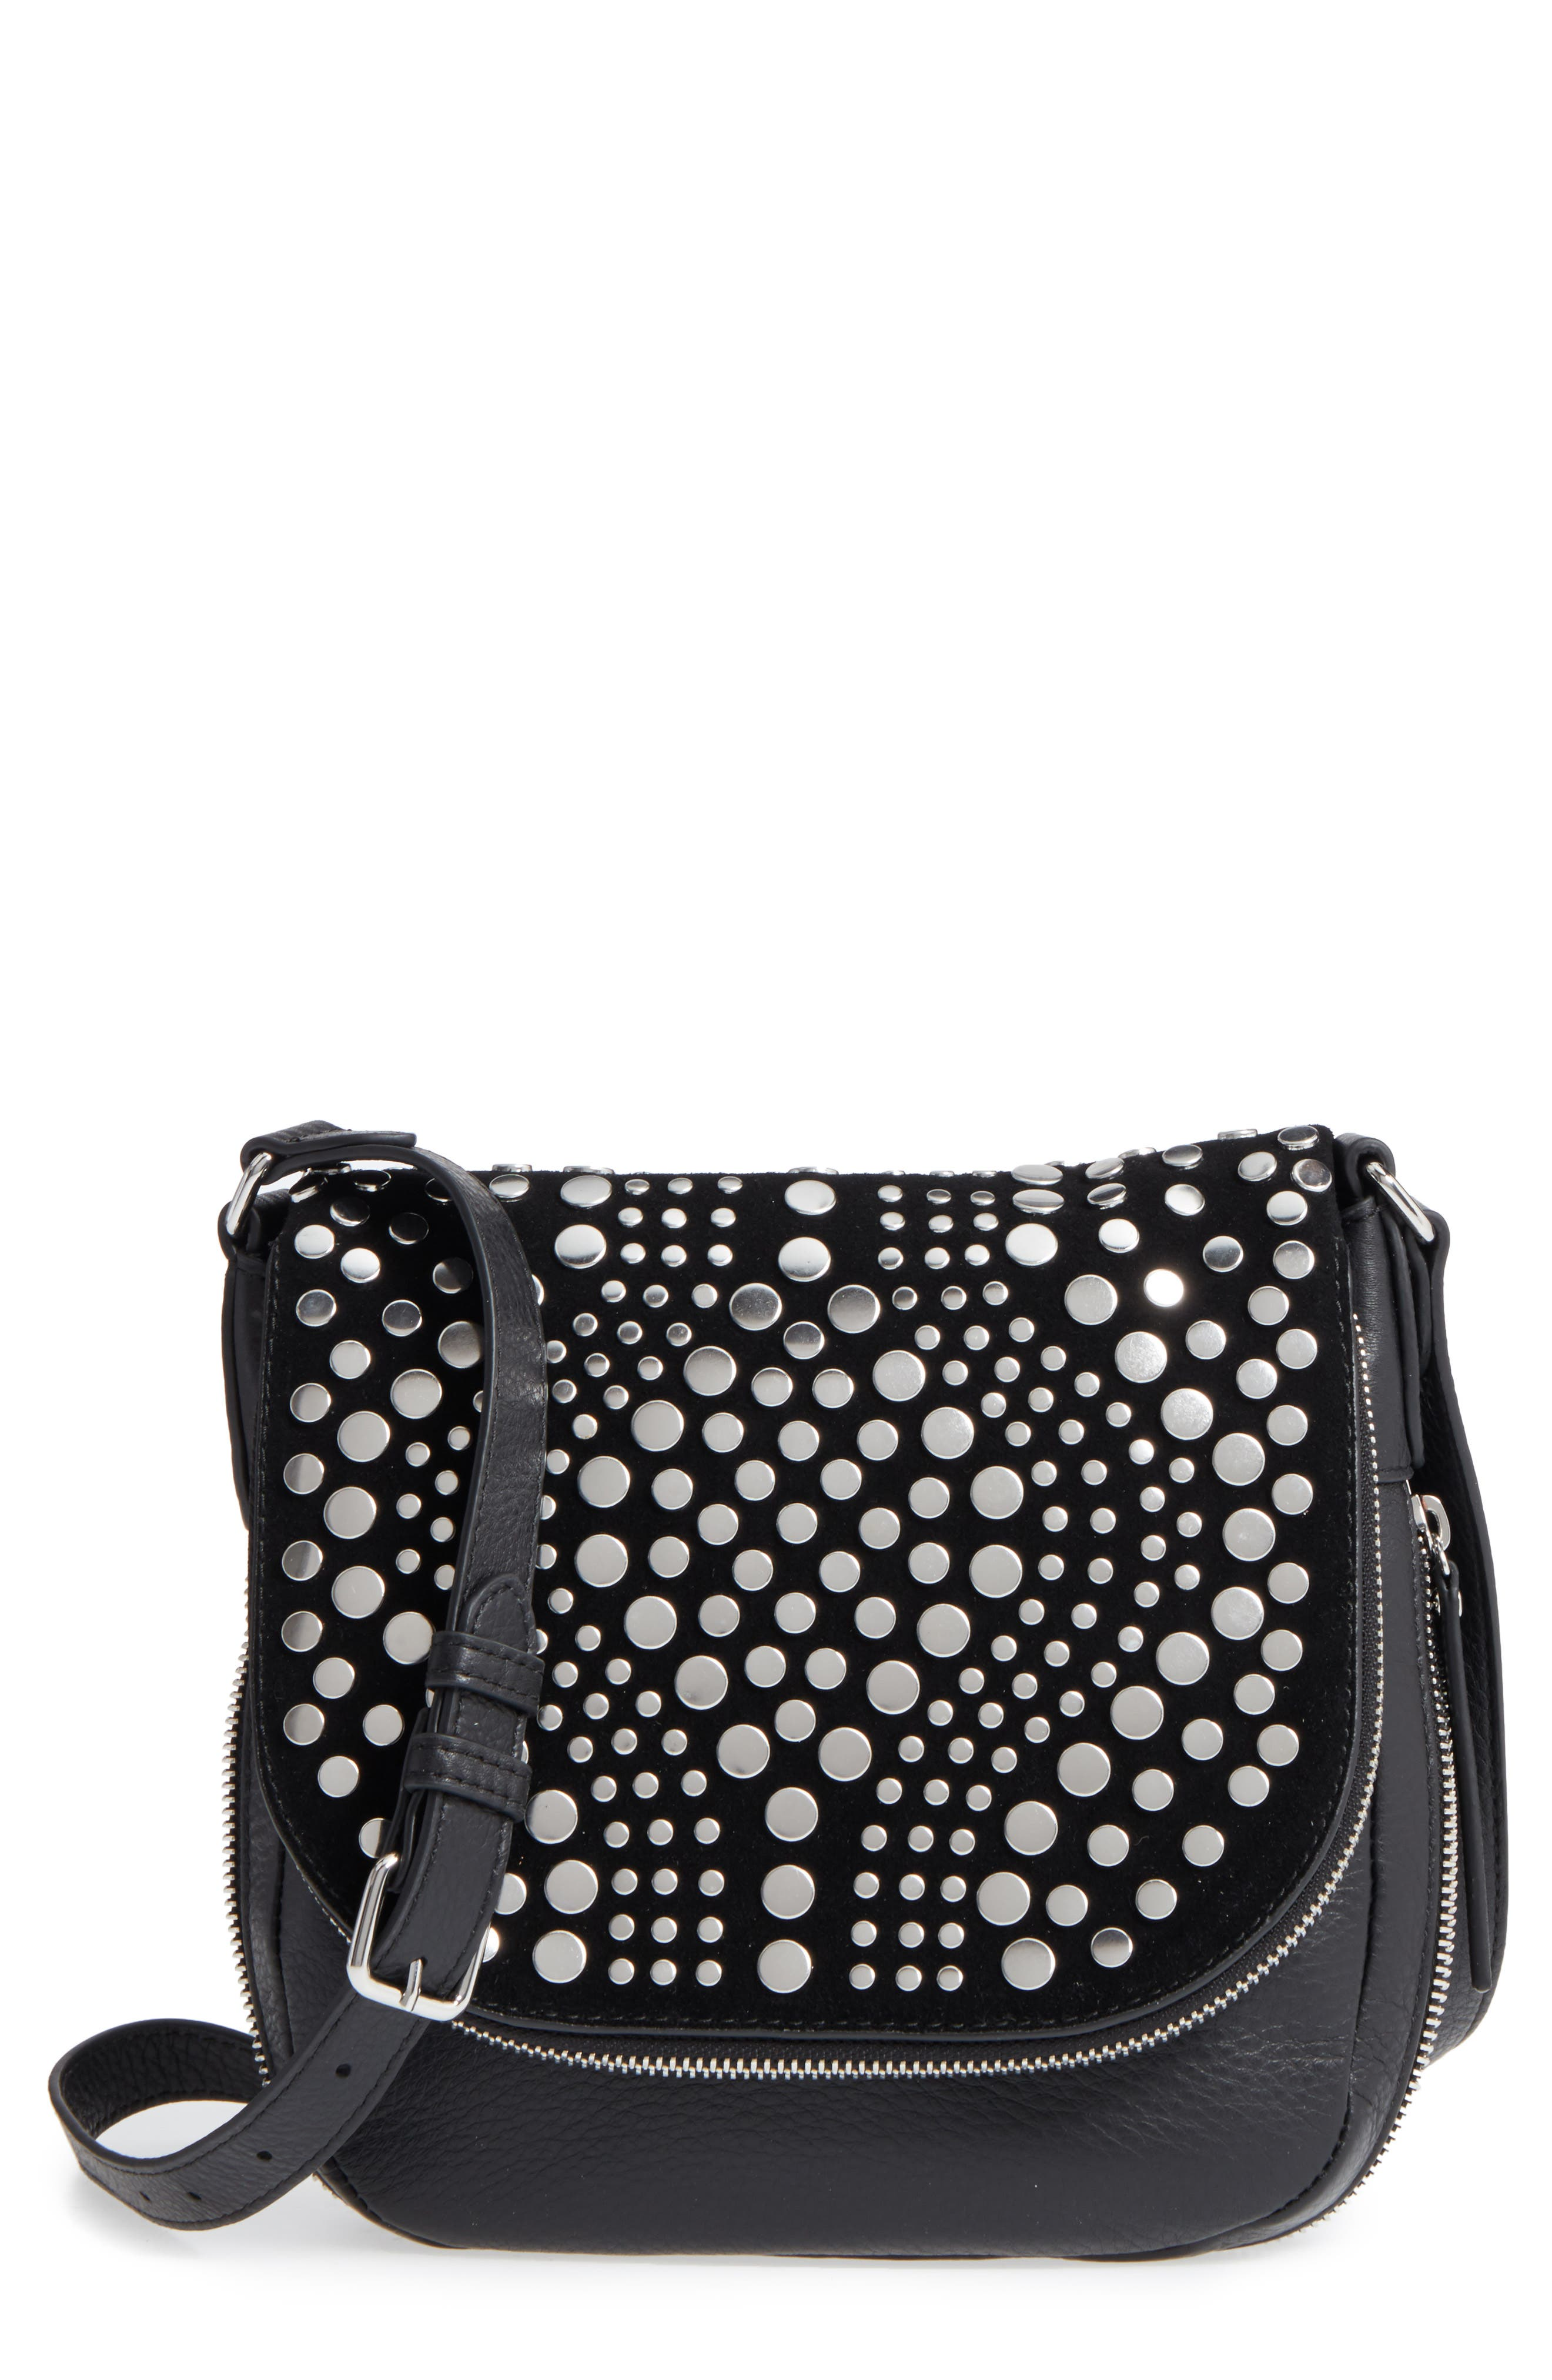 Bonny Studded Leather Crossbody Bag,                             Main thumbnail 1, color,                             Nero